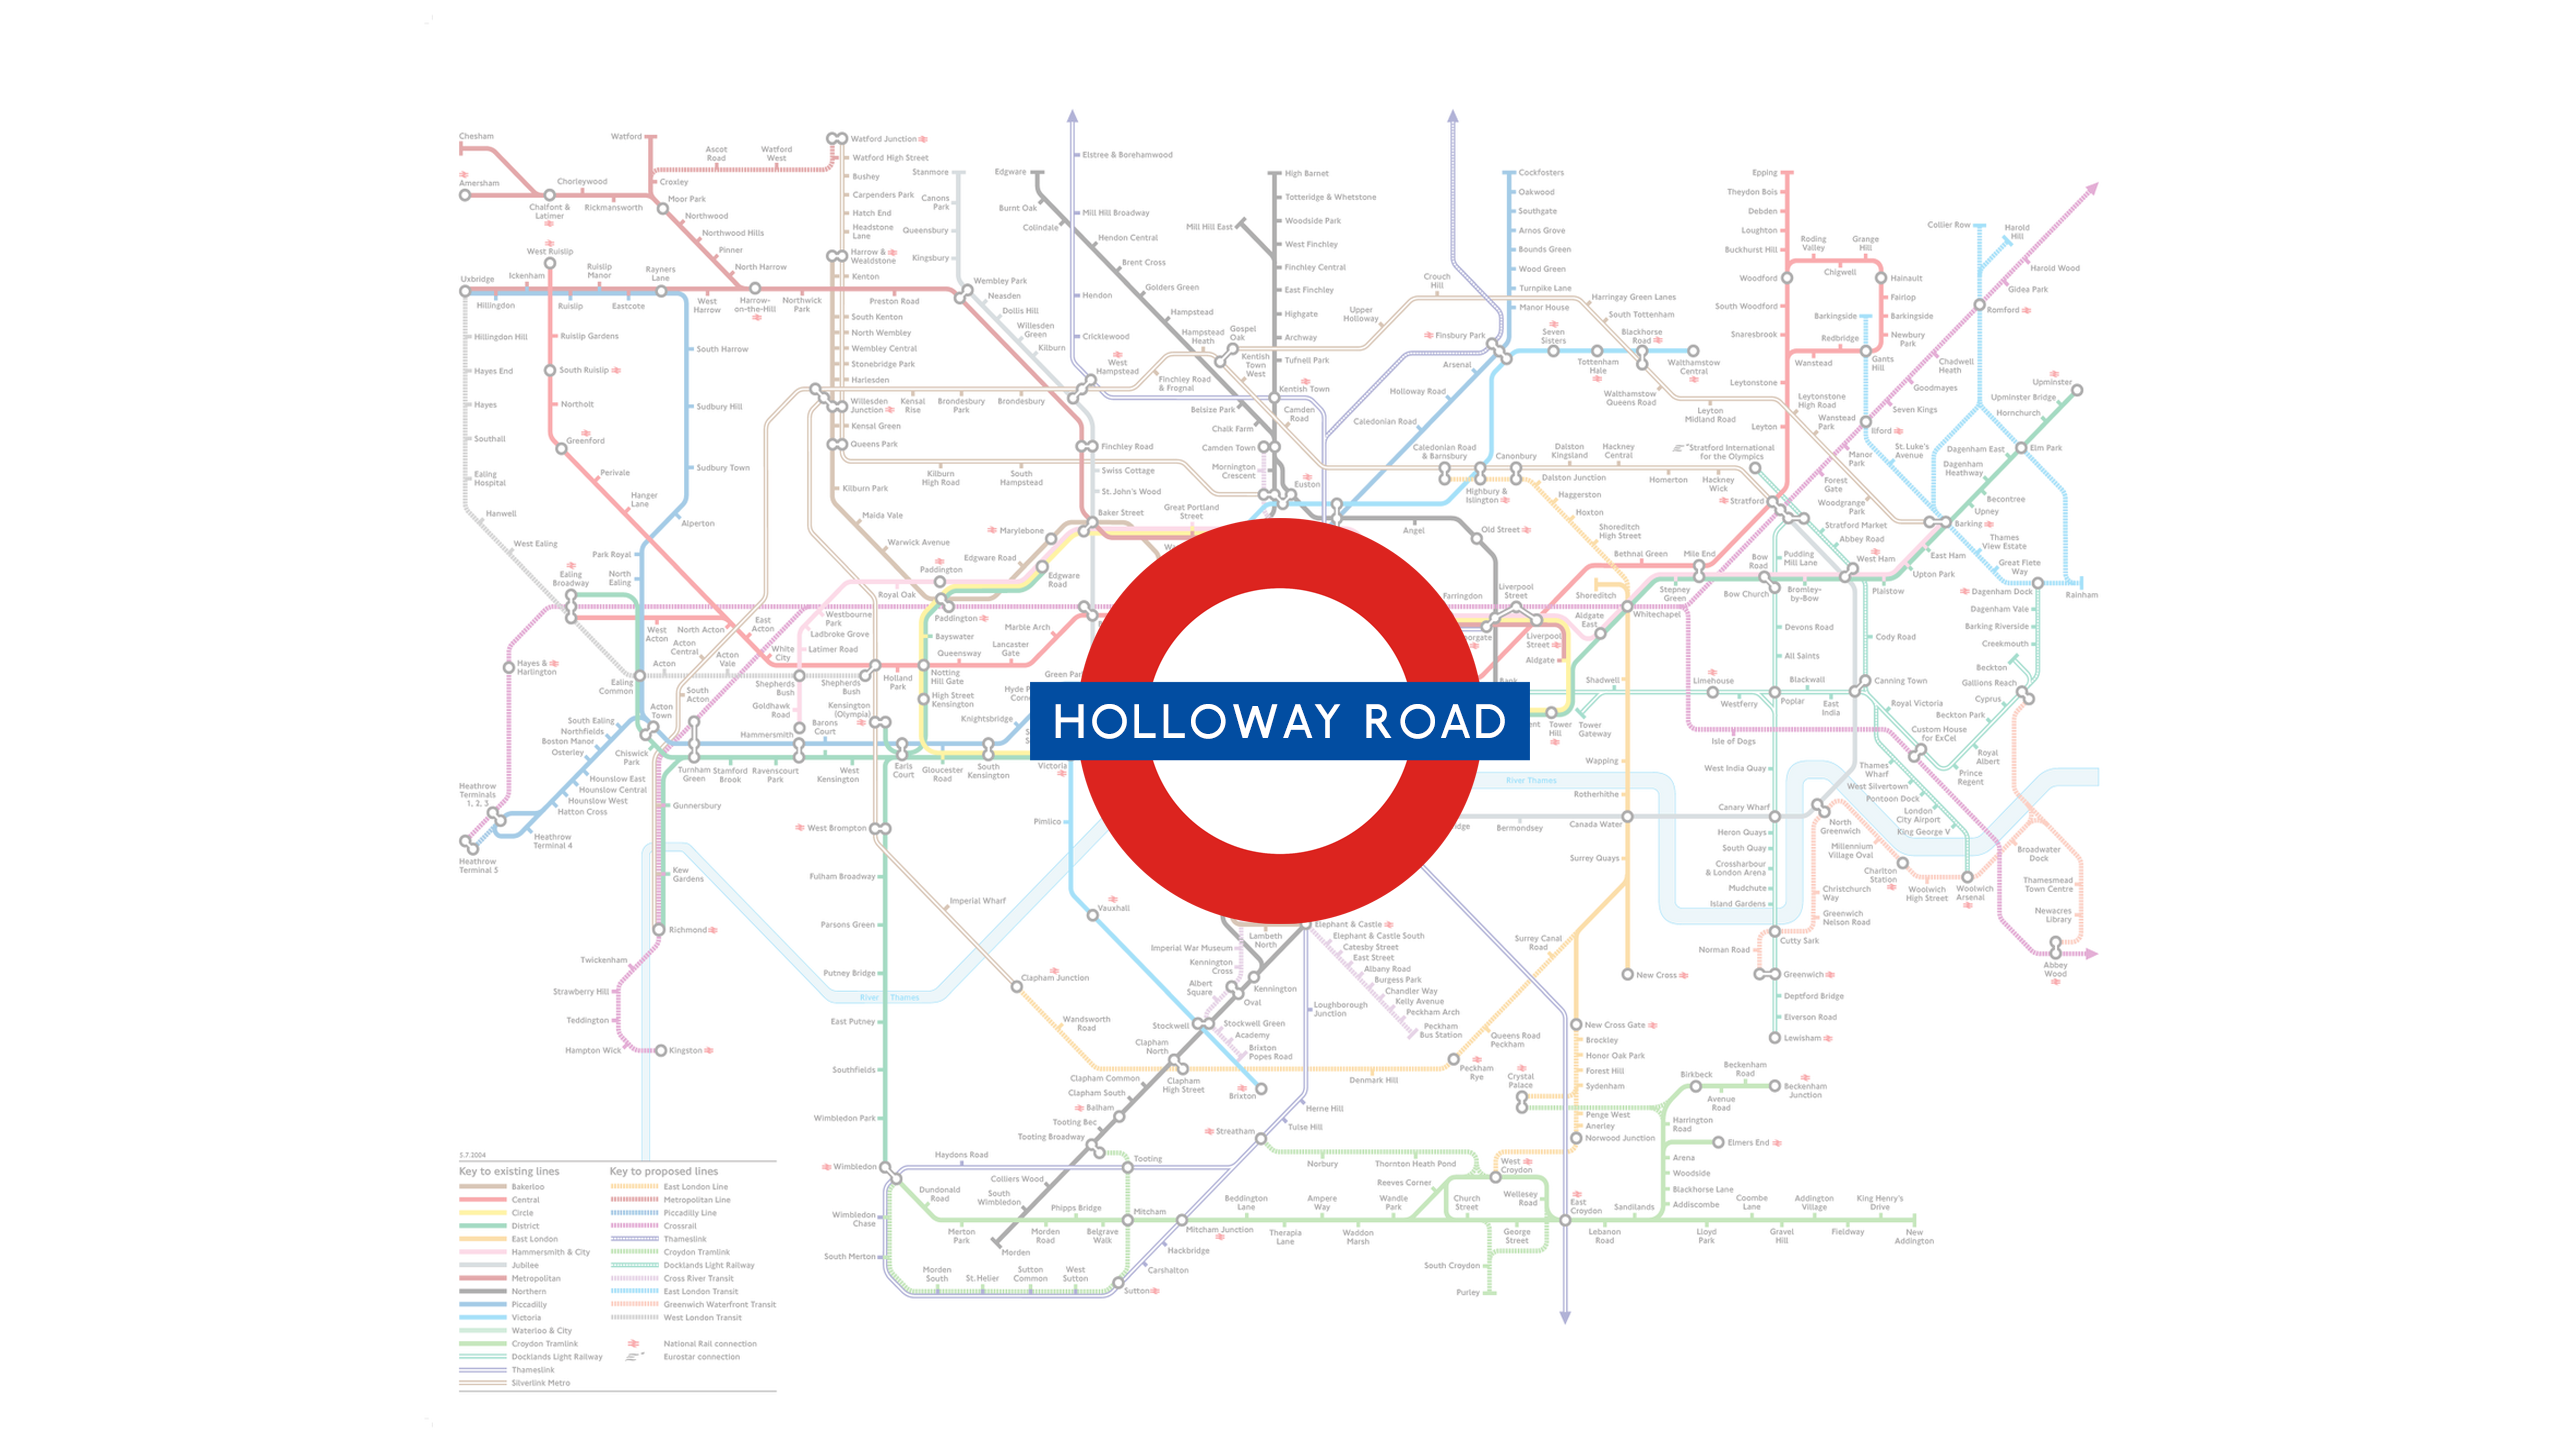 Holloway Road (Map)